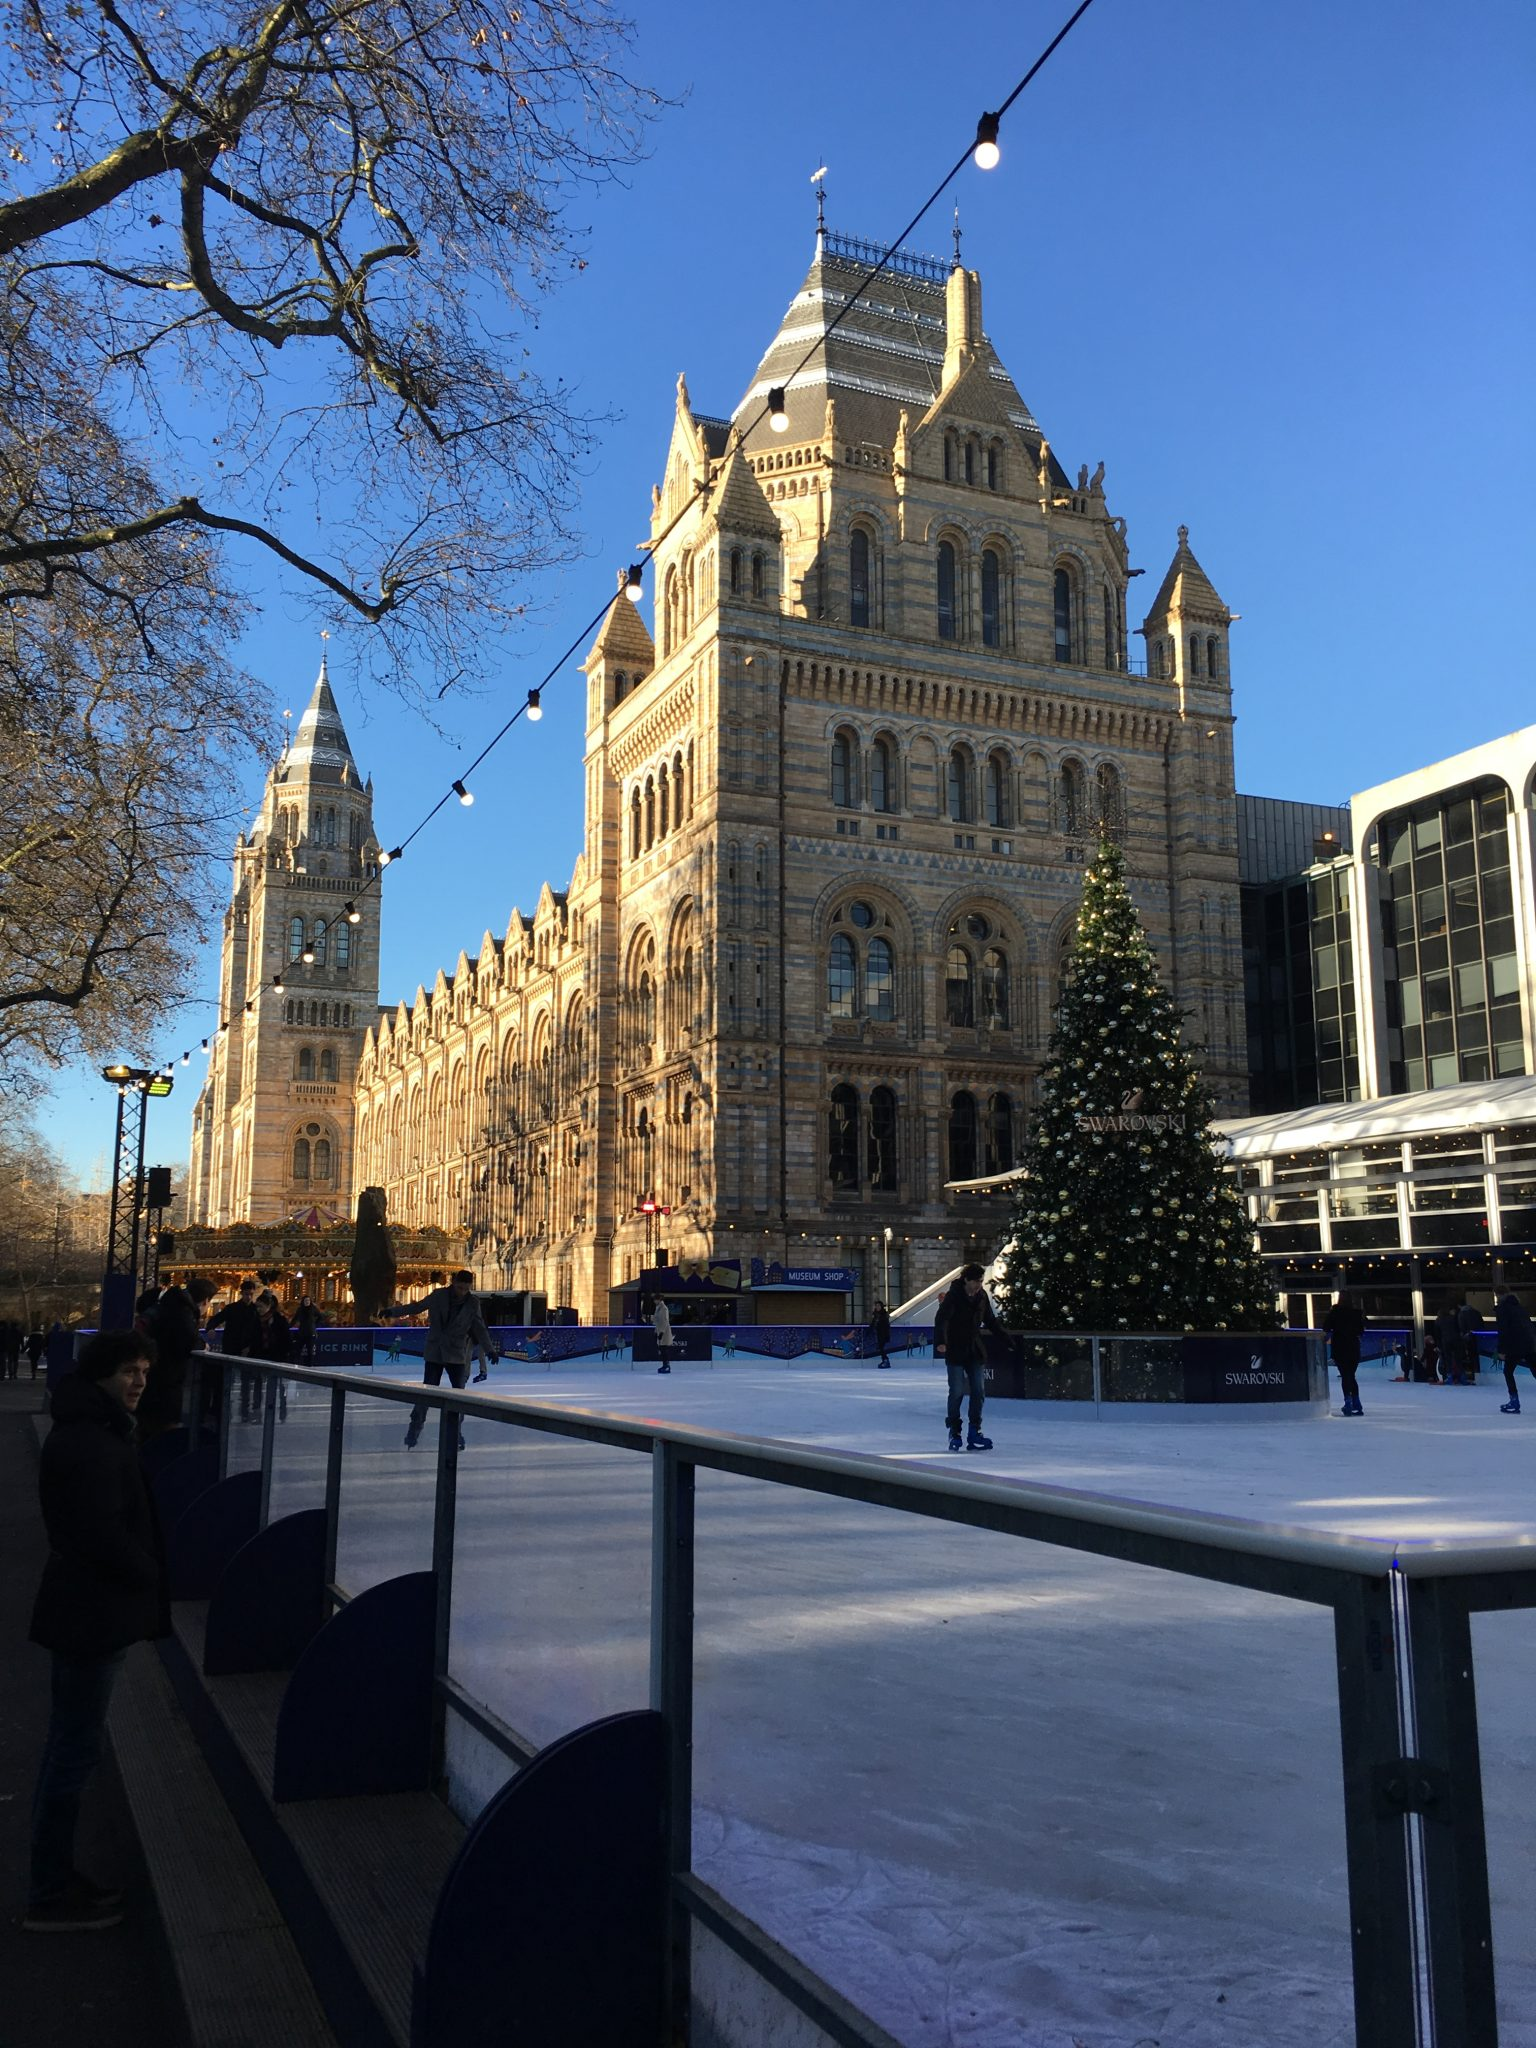 The ice rink in front of the Natural History Museum